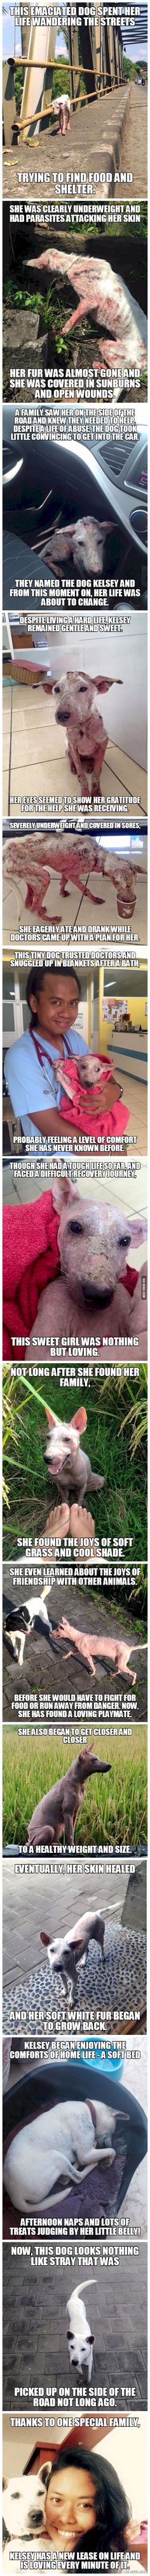 A story of a stray dog... -faith in humanity restored. - 9GAG